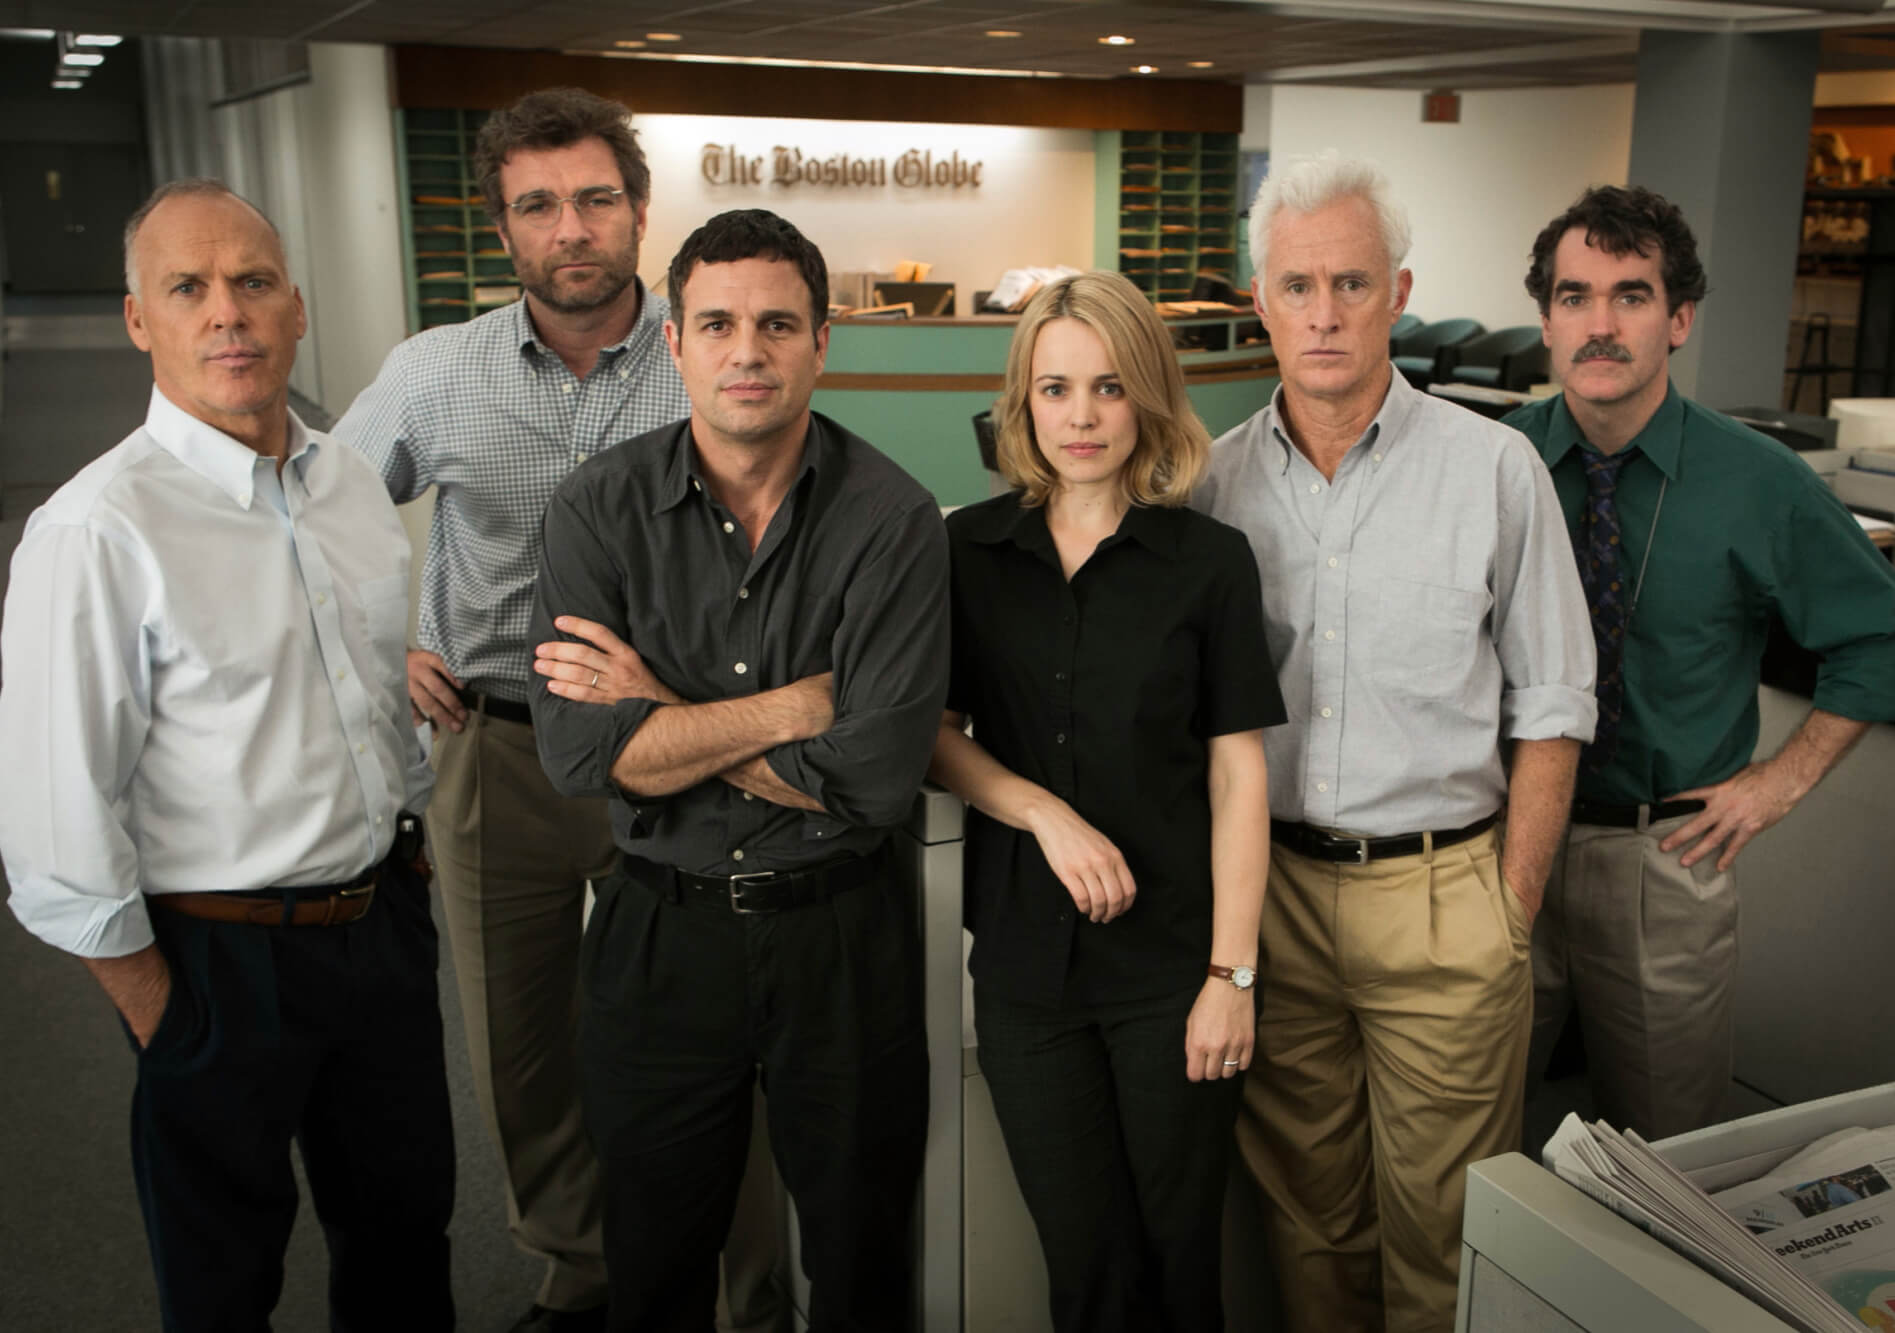 Video still from Spotlight